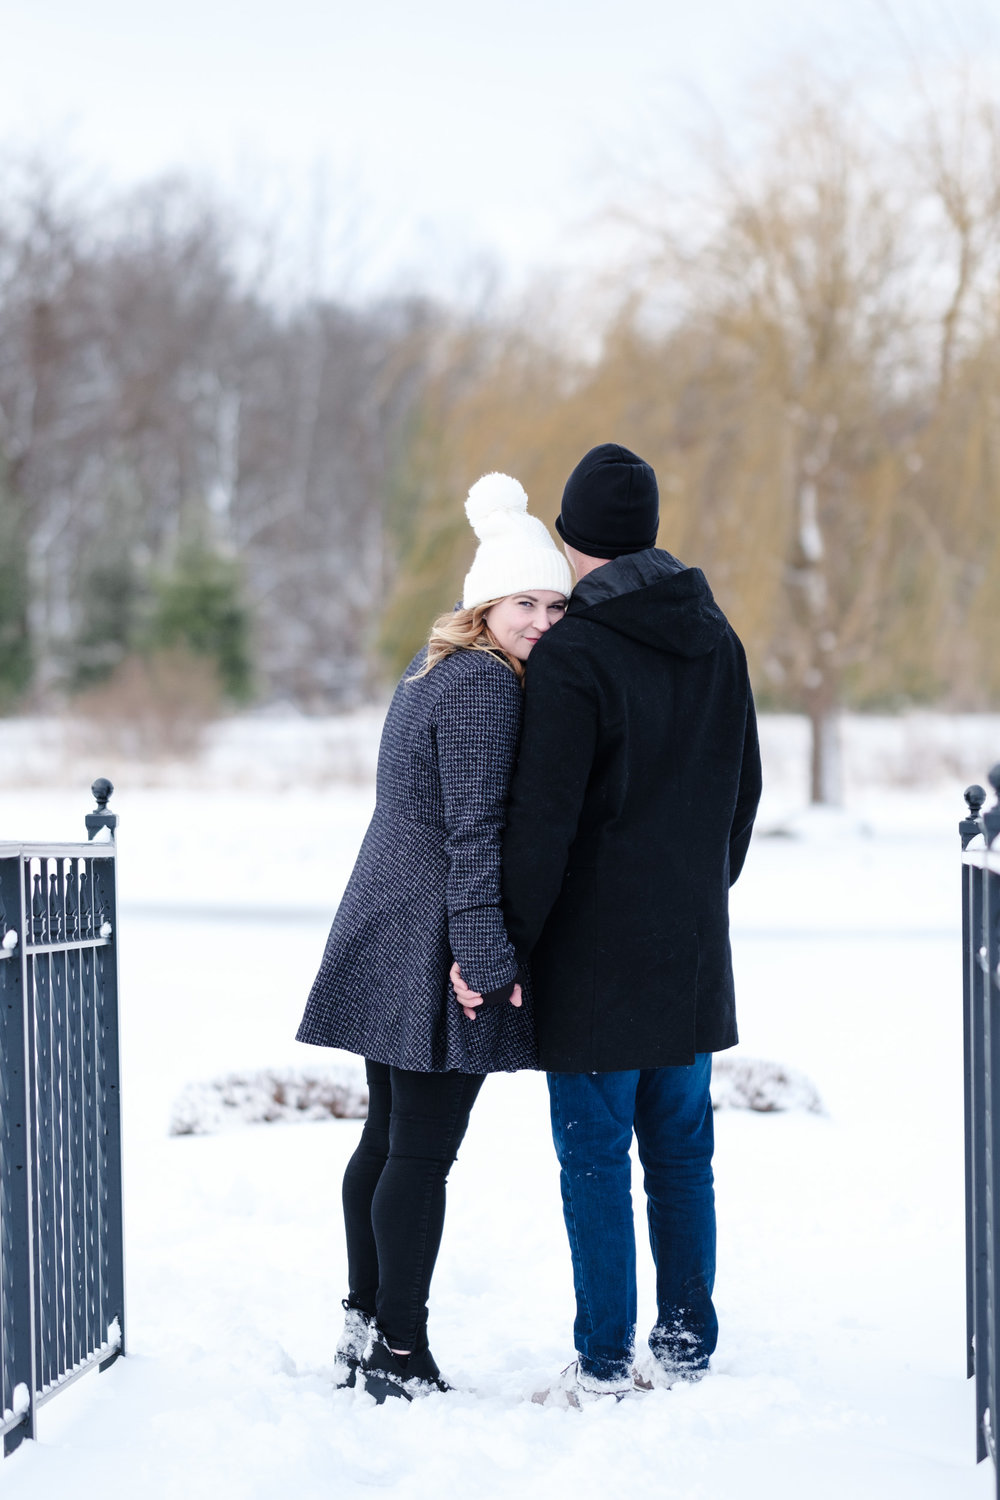 Engagement photo at orchard ridge farms the pavilion, couple embracing overlooking pond with snow covered forest in the distance